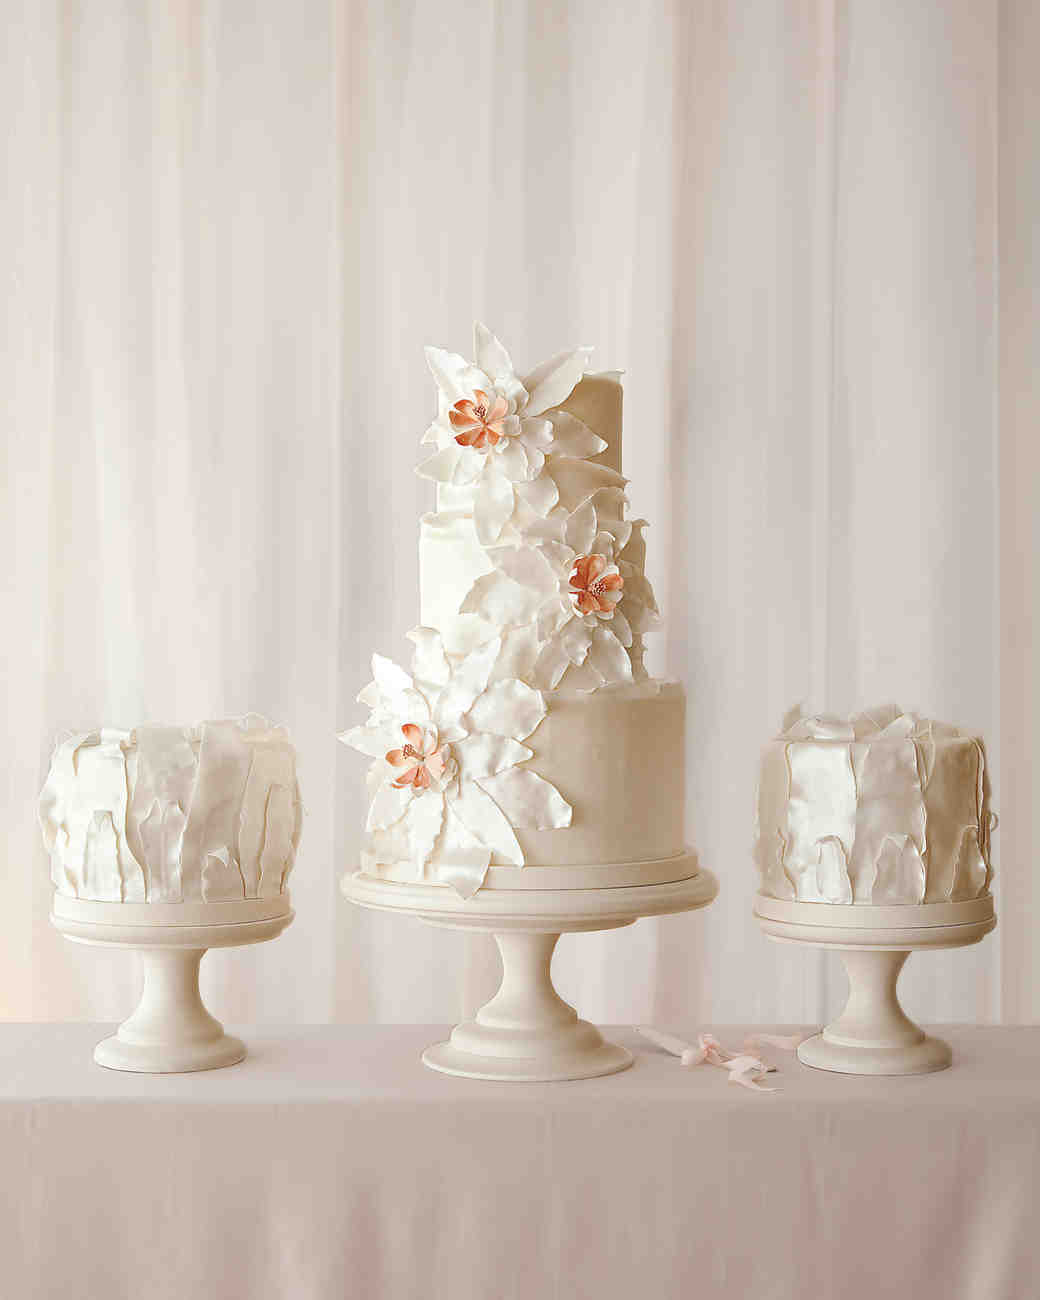 Three White Wedding Cakes with Large Flowers